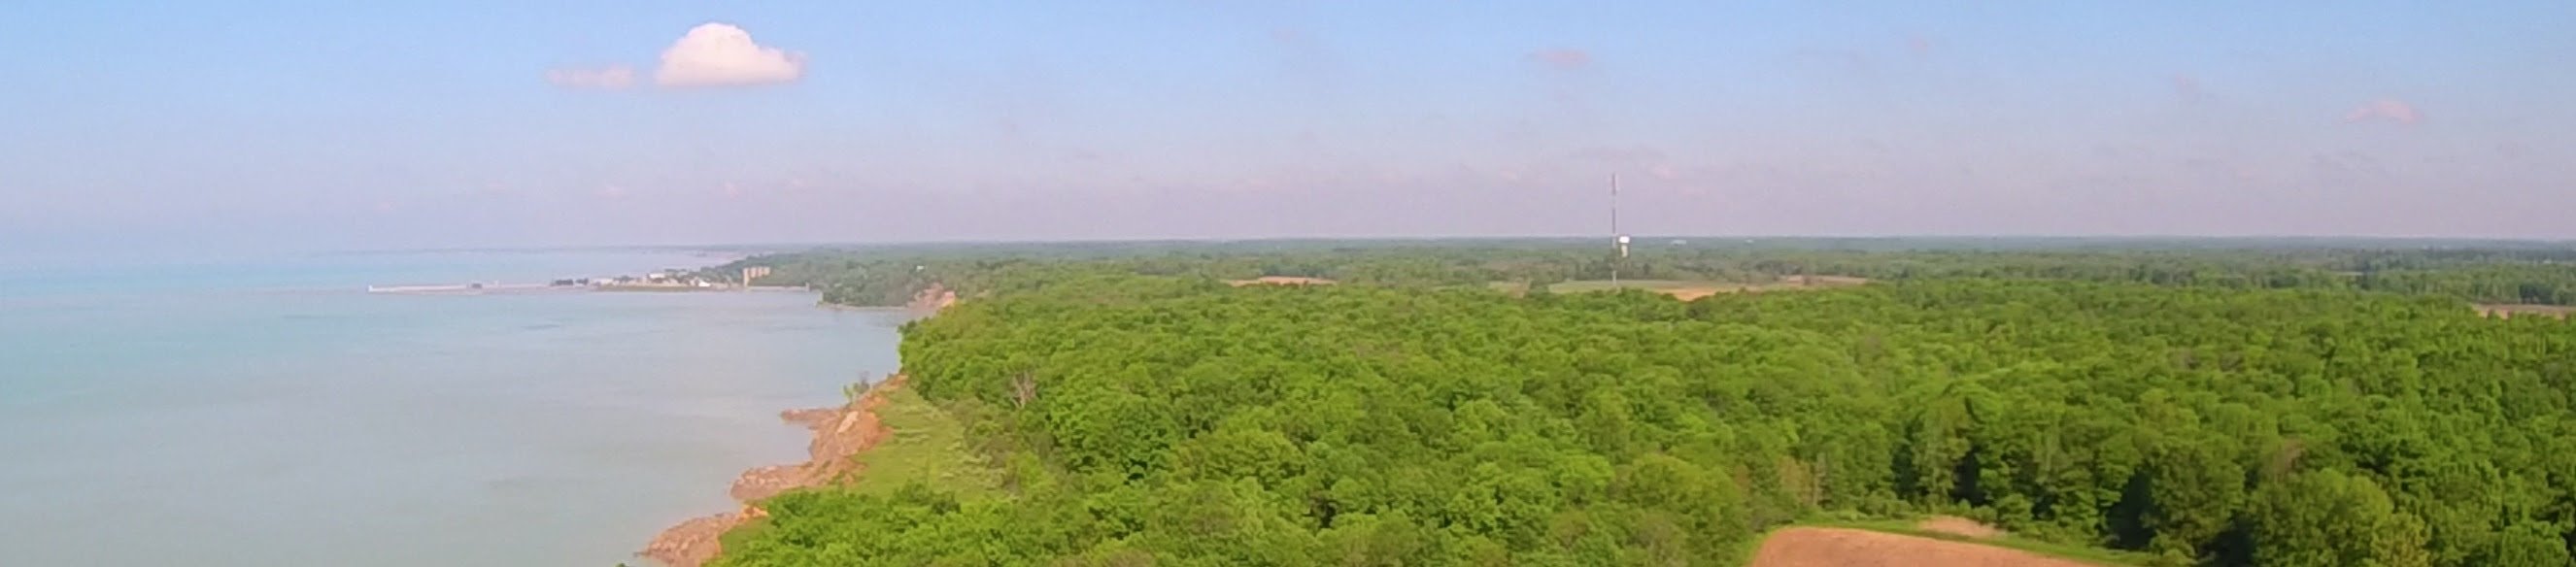 Hawk_Cliff_Woods_cliff_drone_still_slider1.jpg